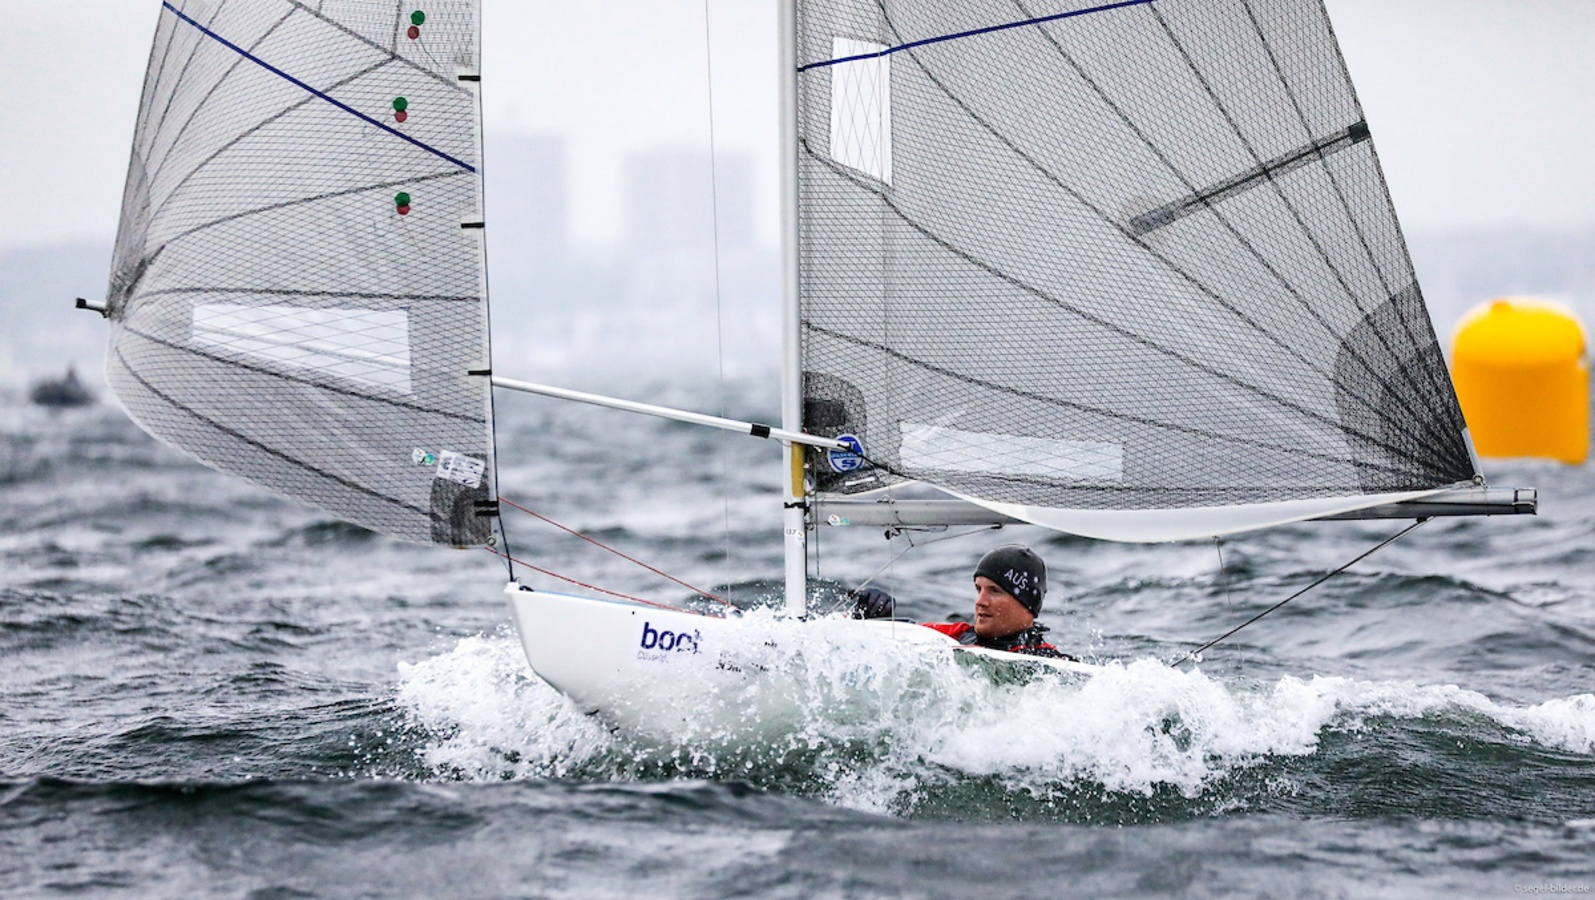 Puerto Sherry to host 2019 Para World Sailing Championships